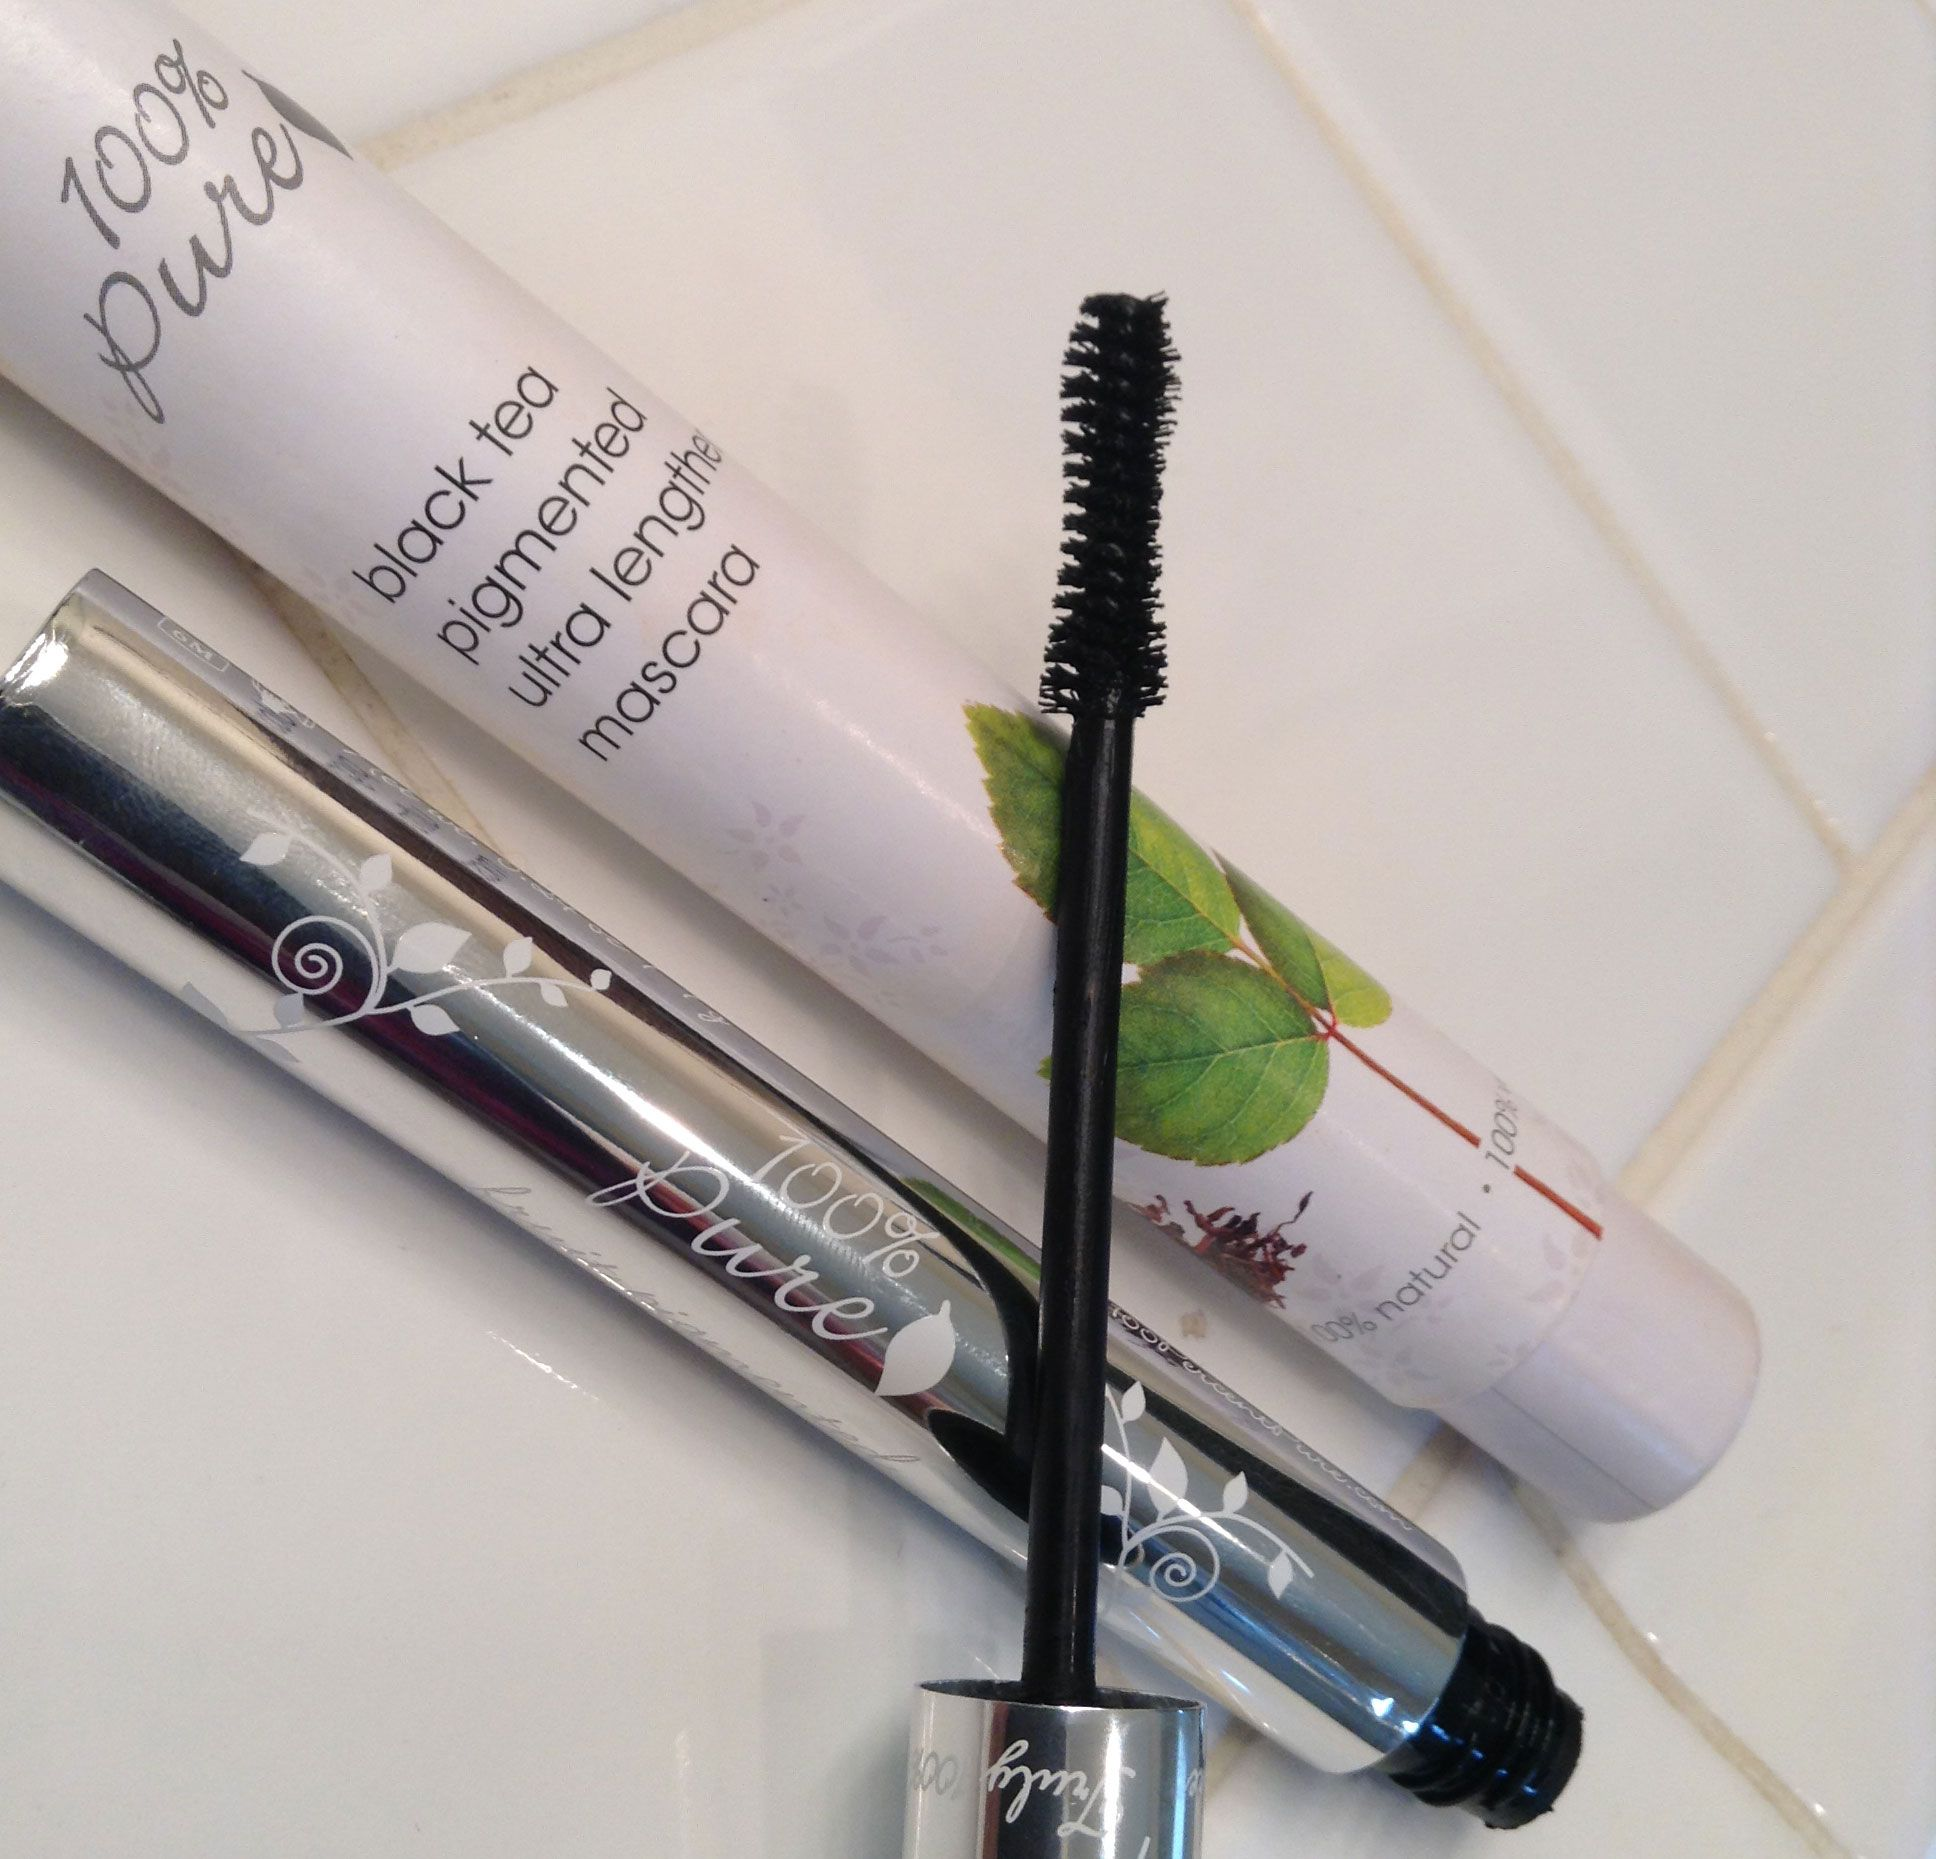 100 Pure Fruit Pigmented Mascara Pure products, 100